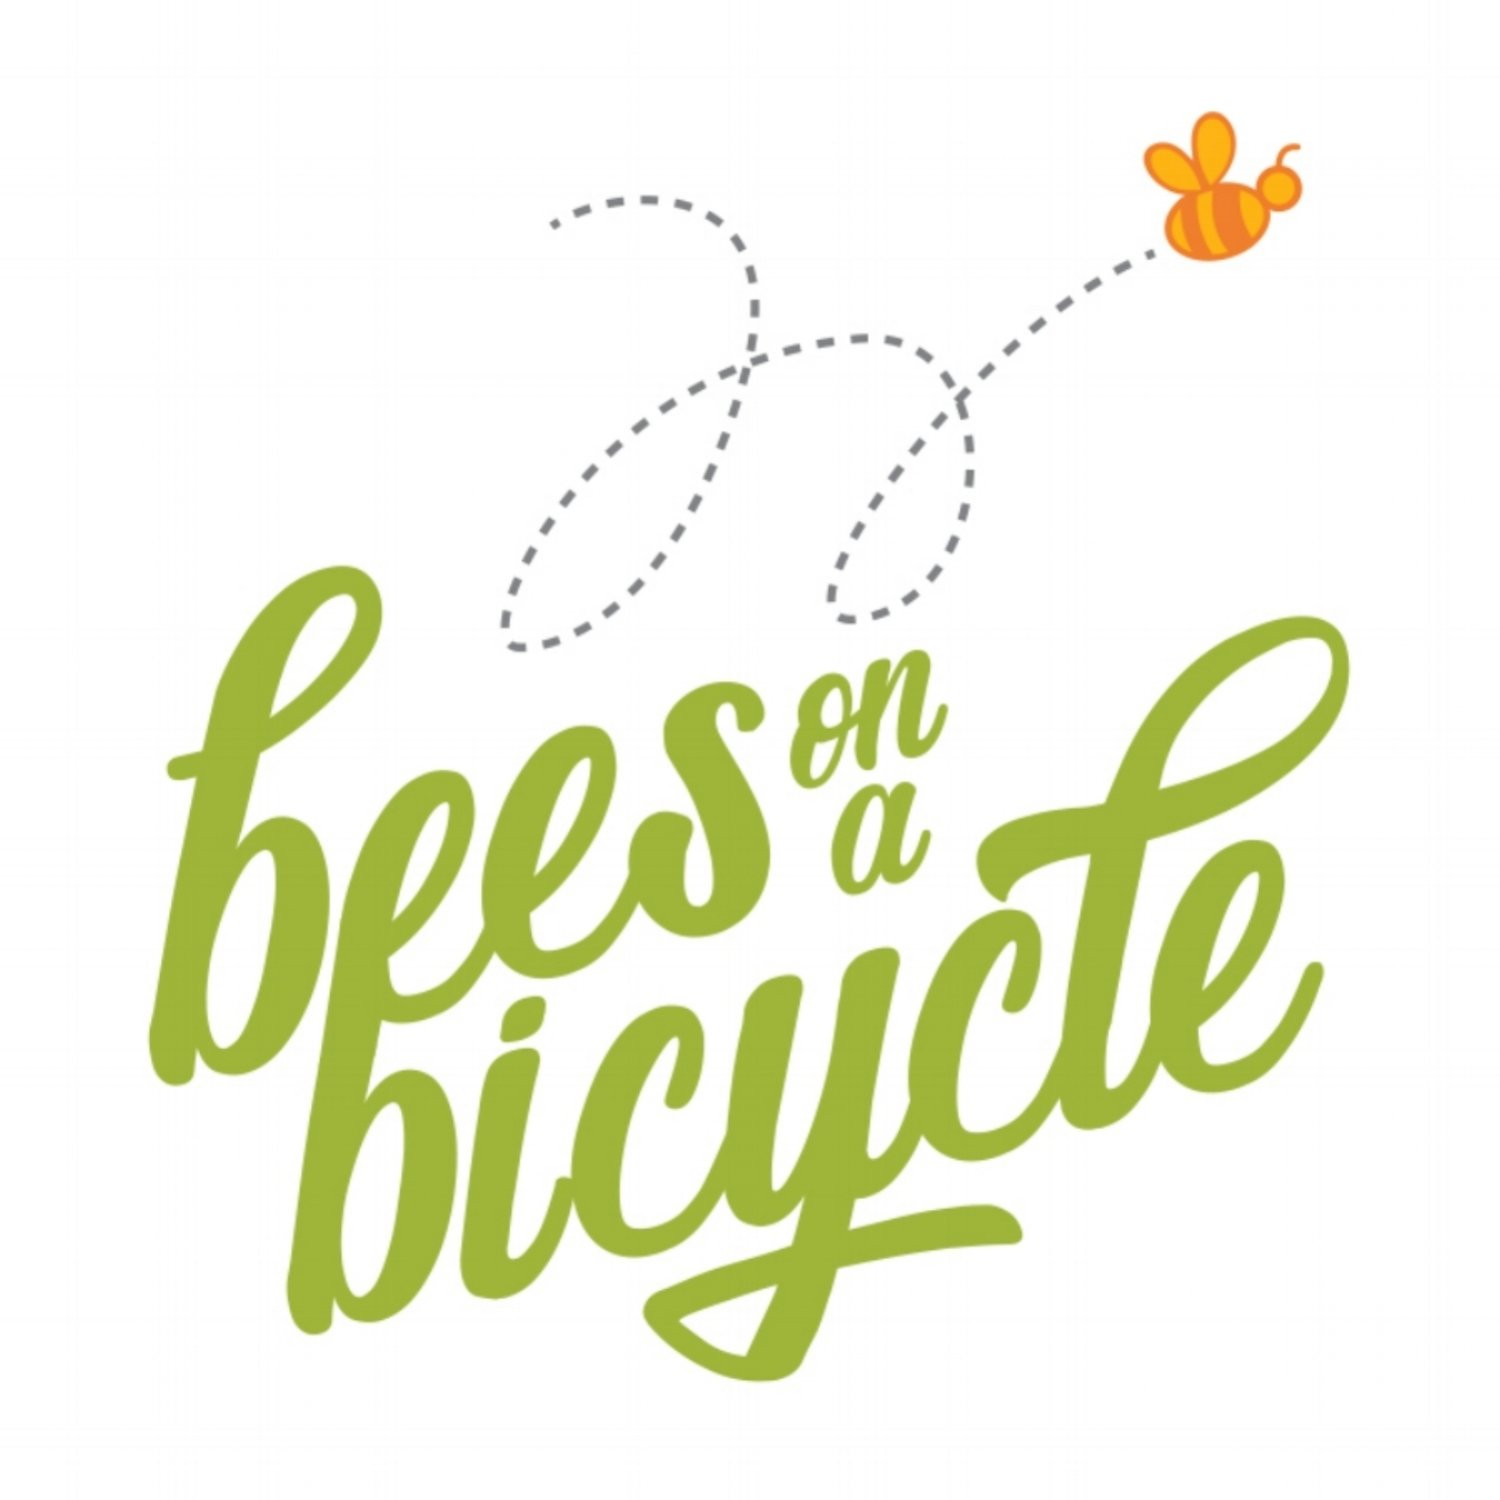 Bees on a Bicycle